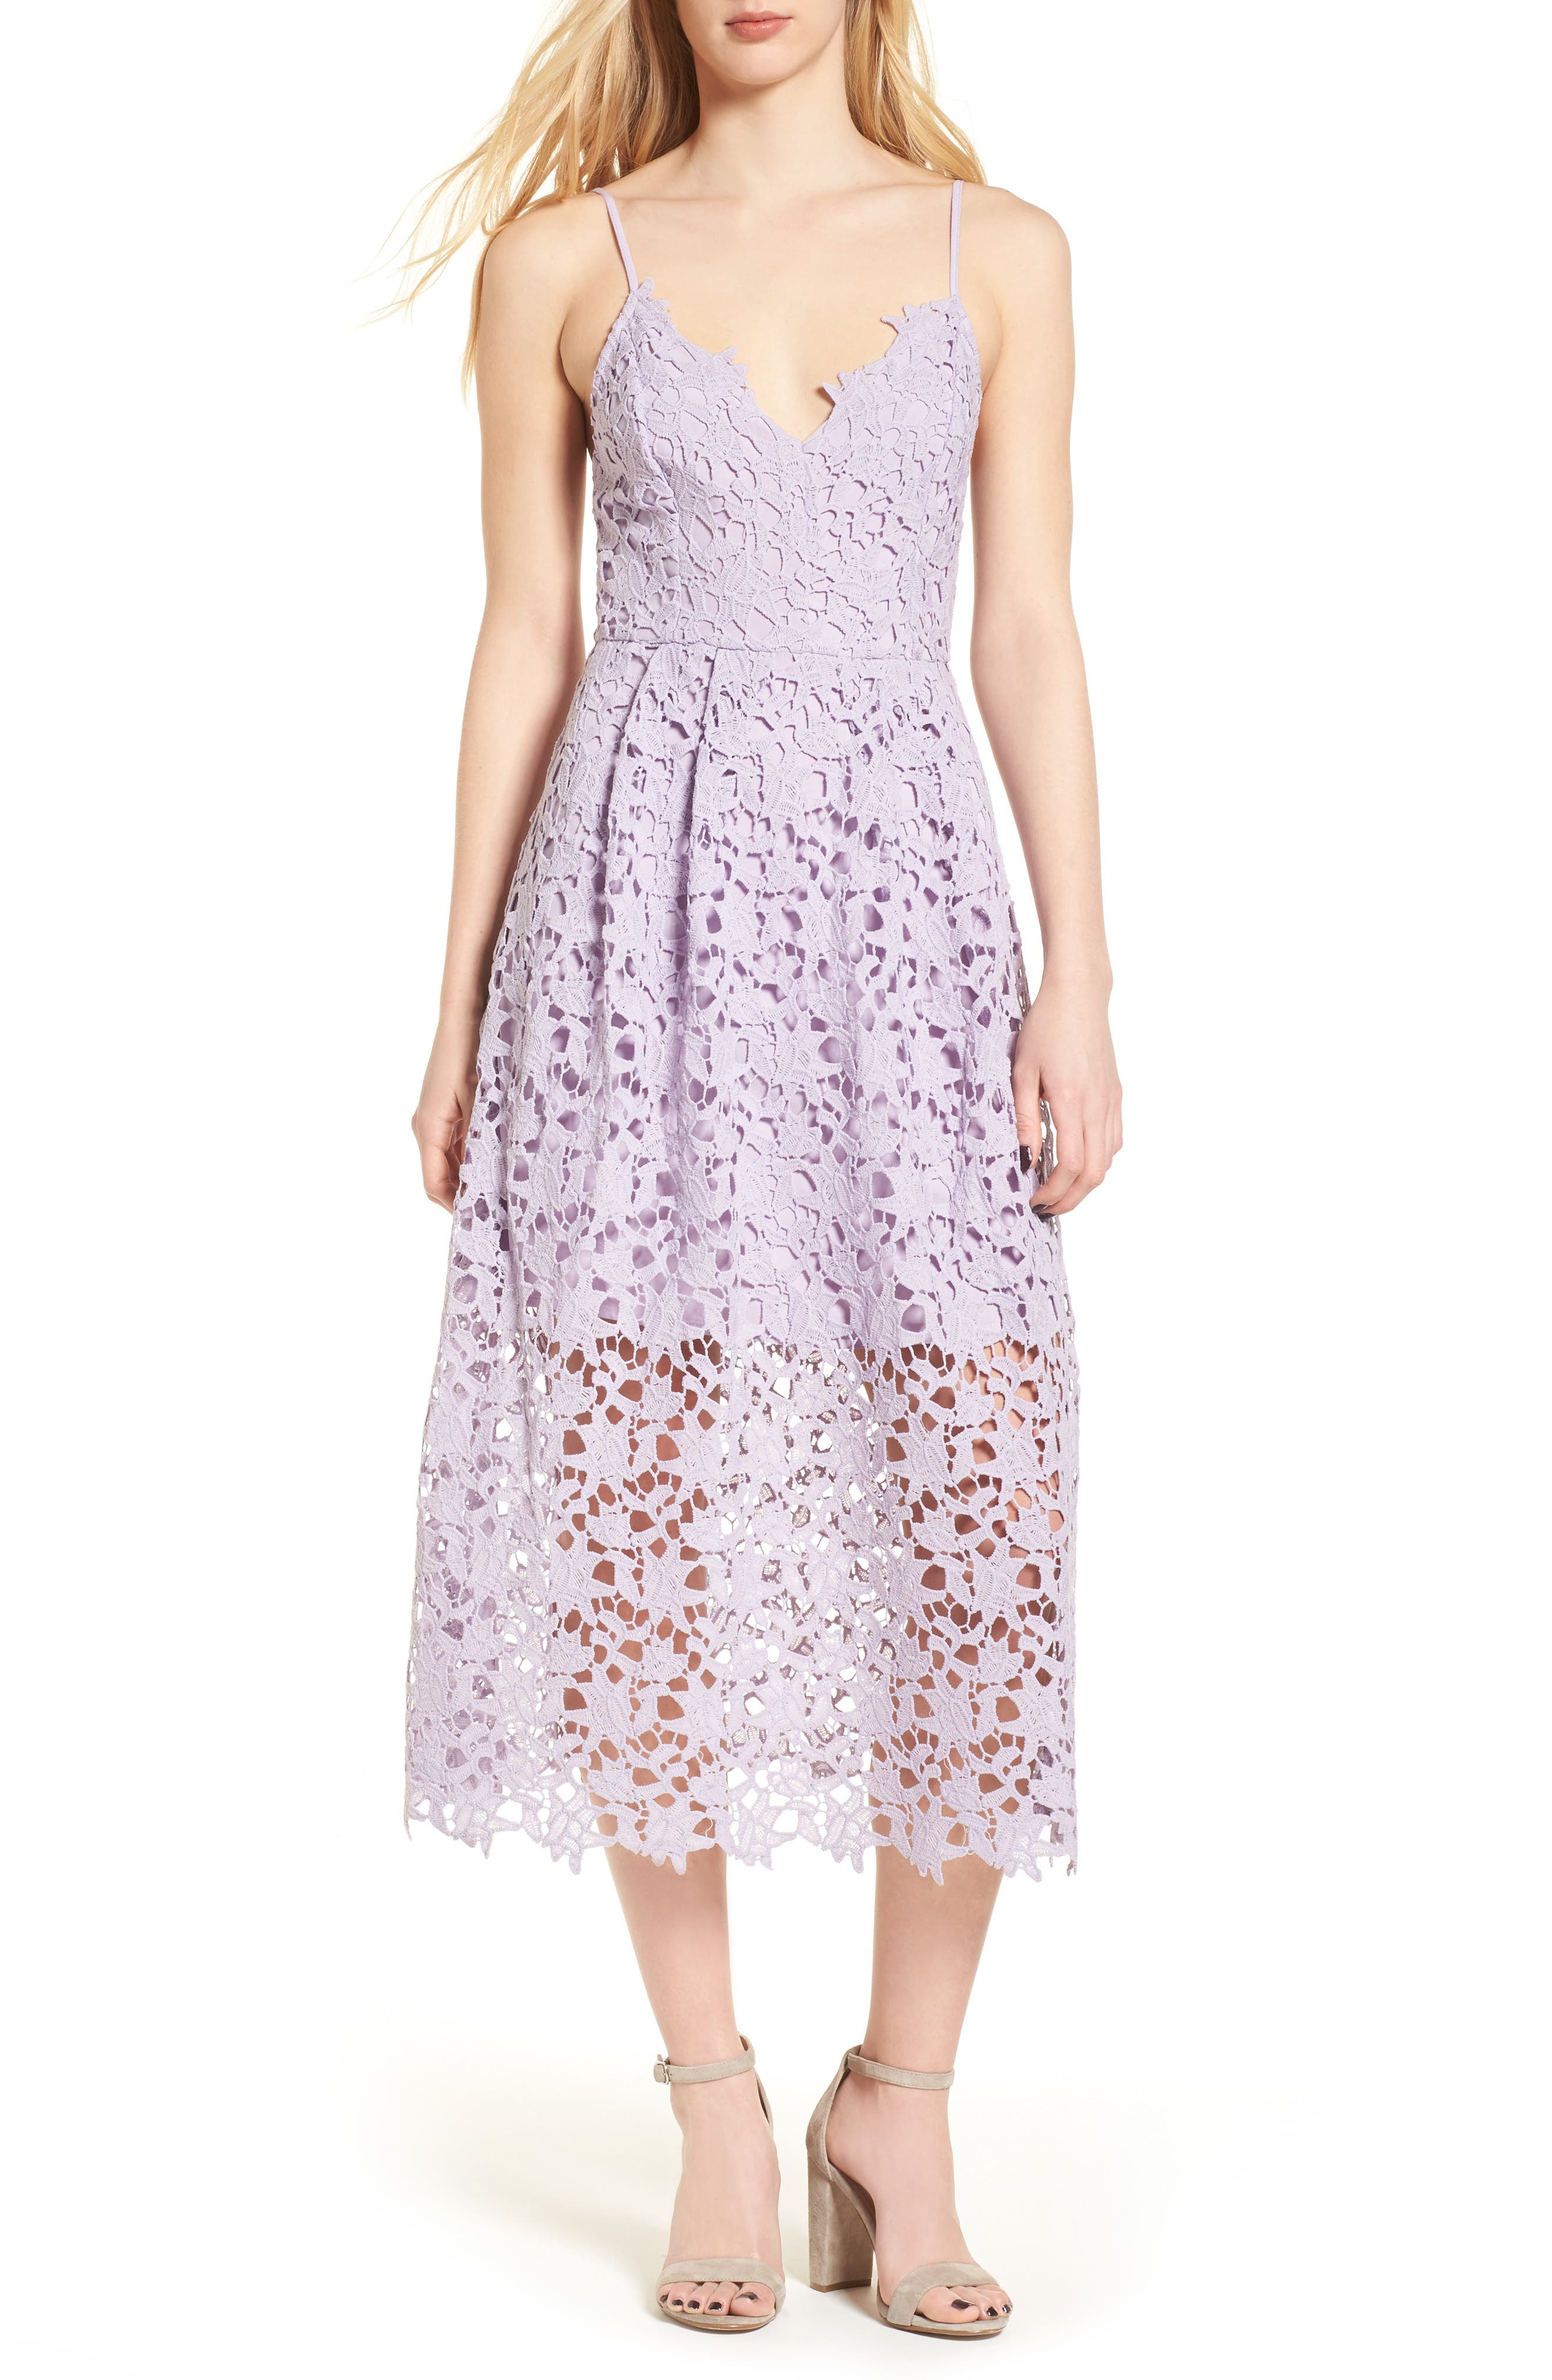 ASTR THE LABEL Lace Midi Dress, Main, color, LILAC